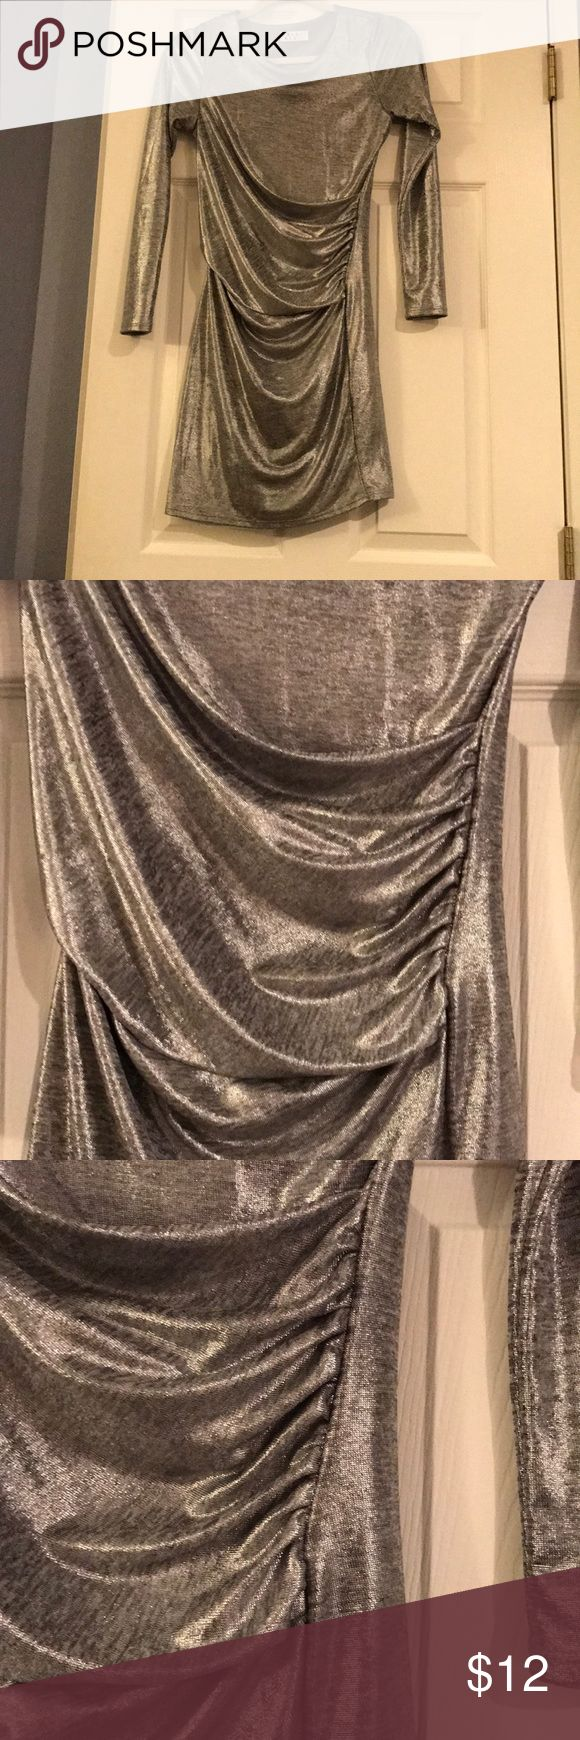 Metallic Dress Shine On Silver Bodycon Dress from Tobi. Purchased for a Halloween costume. Will most likely never wear again.   Size: Small Length: 33in Lined  Polyester and spandex Tobi Dresses Mini